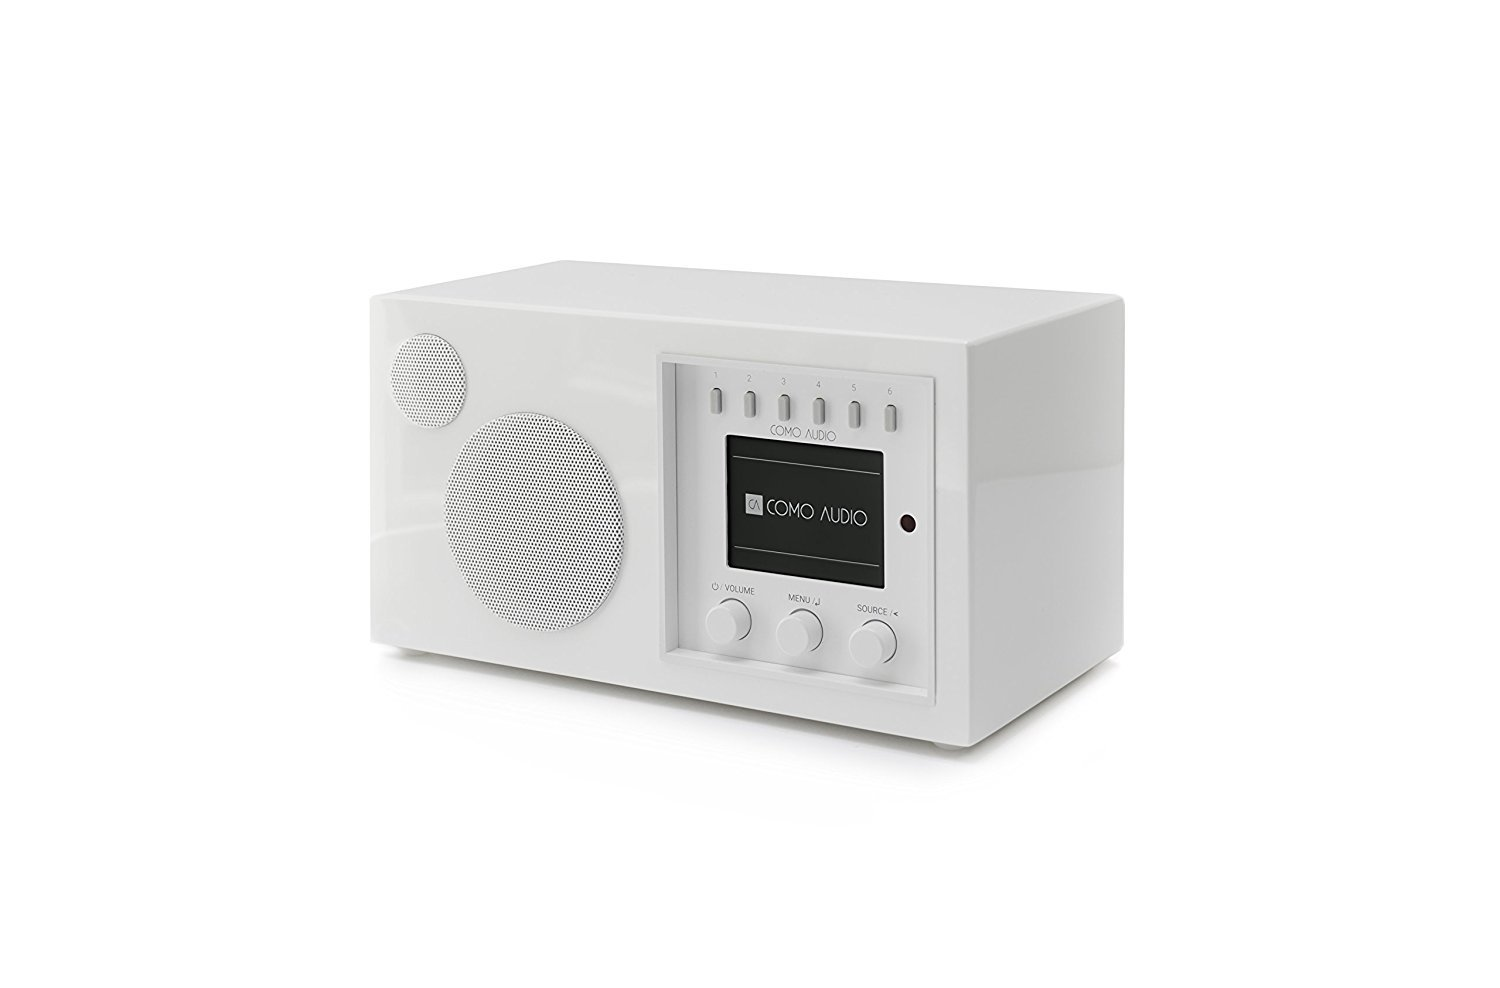 Como Audio: Solo - Wireless Music System with Internet Radio, Spotify Connect, Wi-Fi, FM, and Bluetooth - Piano White